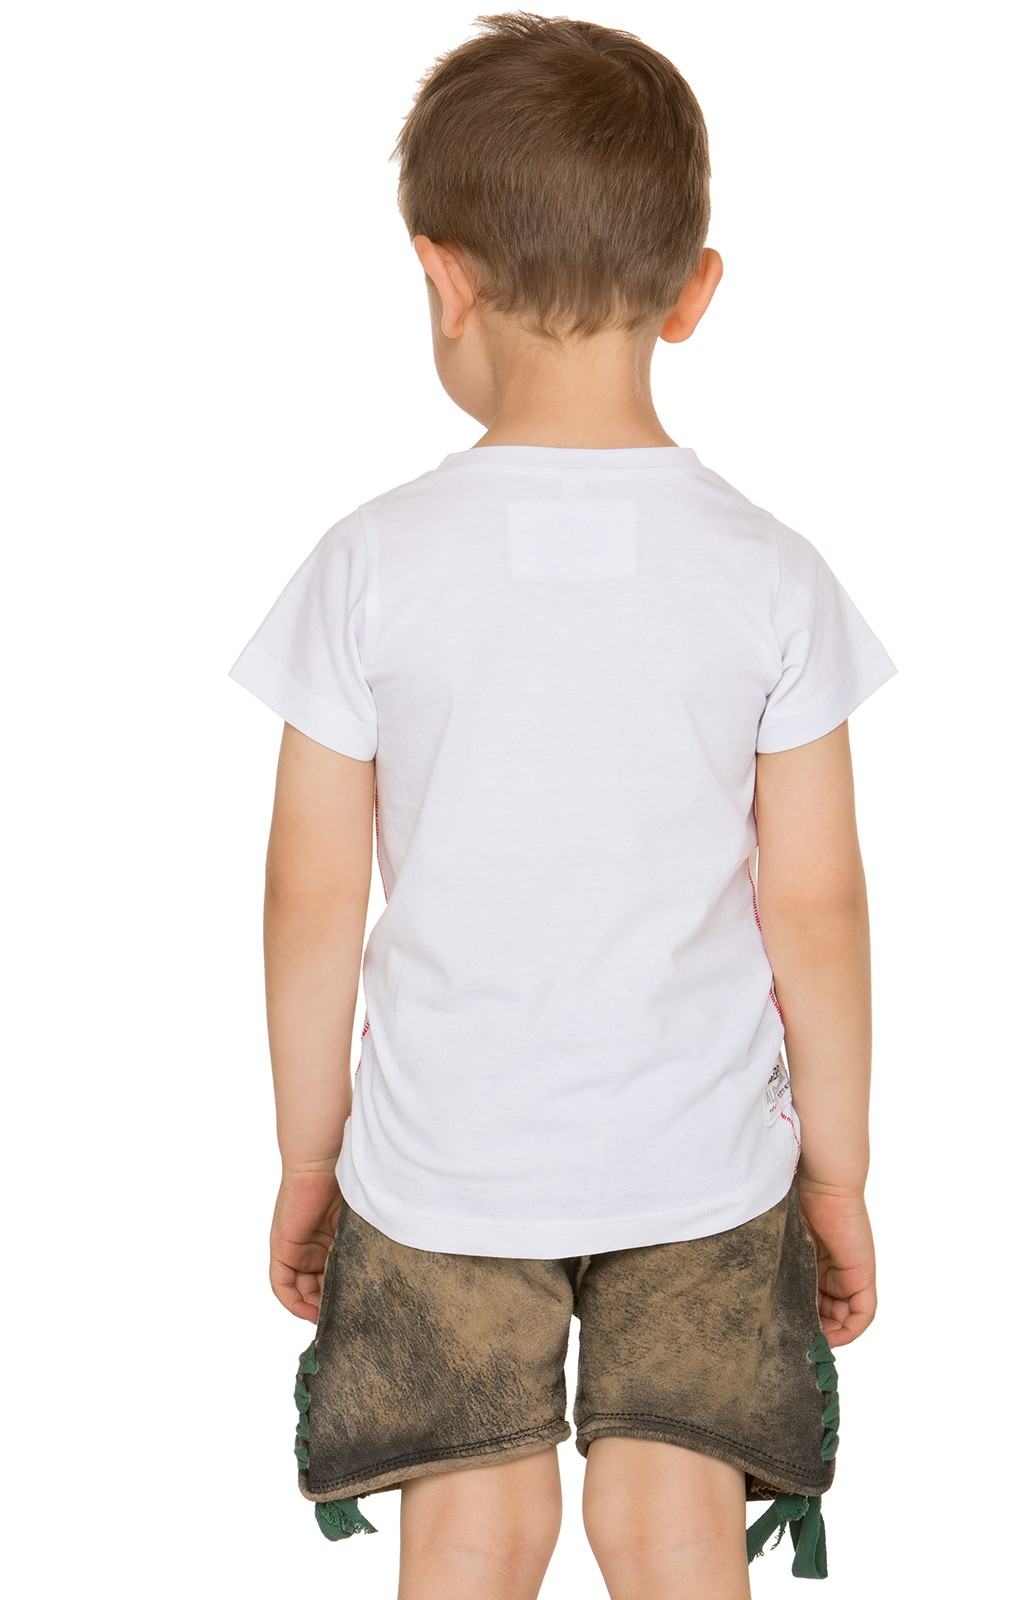 weitere Bilder von Children traditional shirt WOLPIBOY white